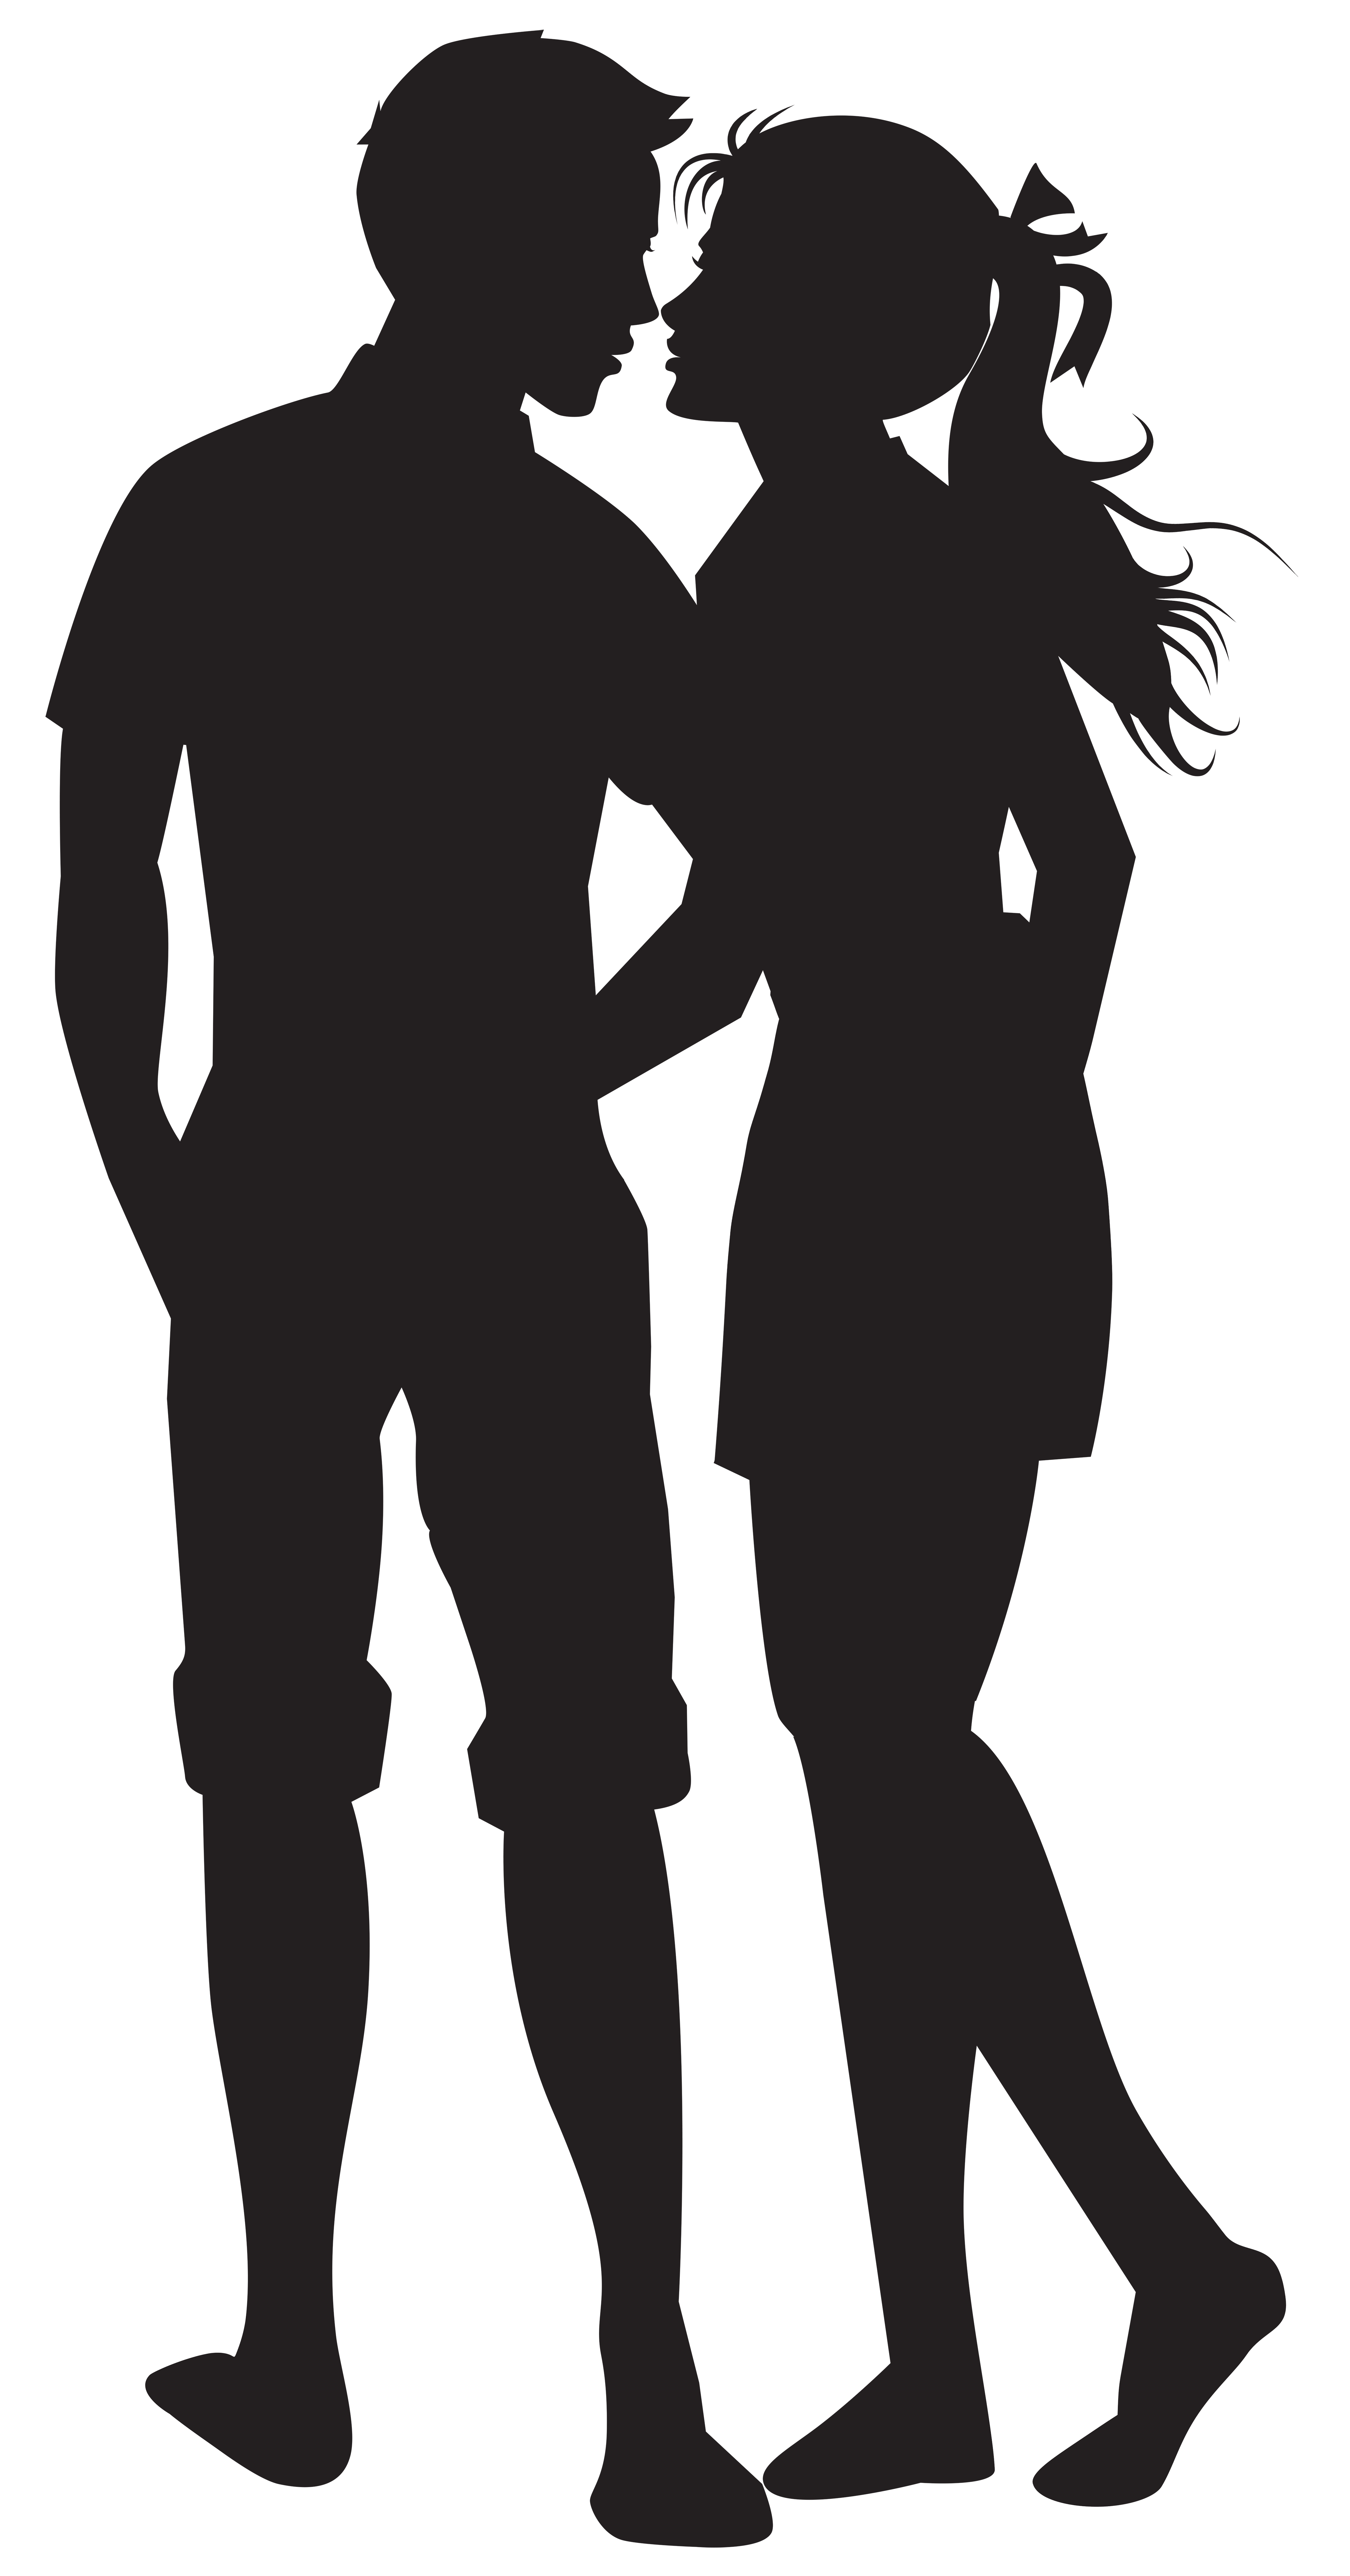 Doctor clipart couple.  collection of silhouette